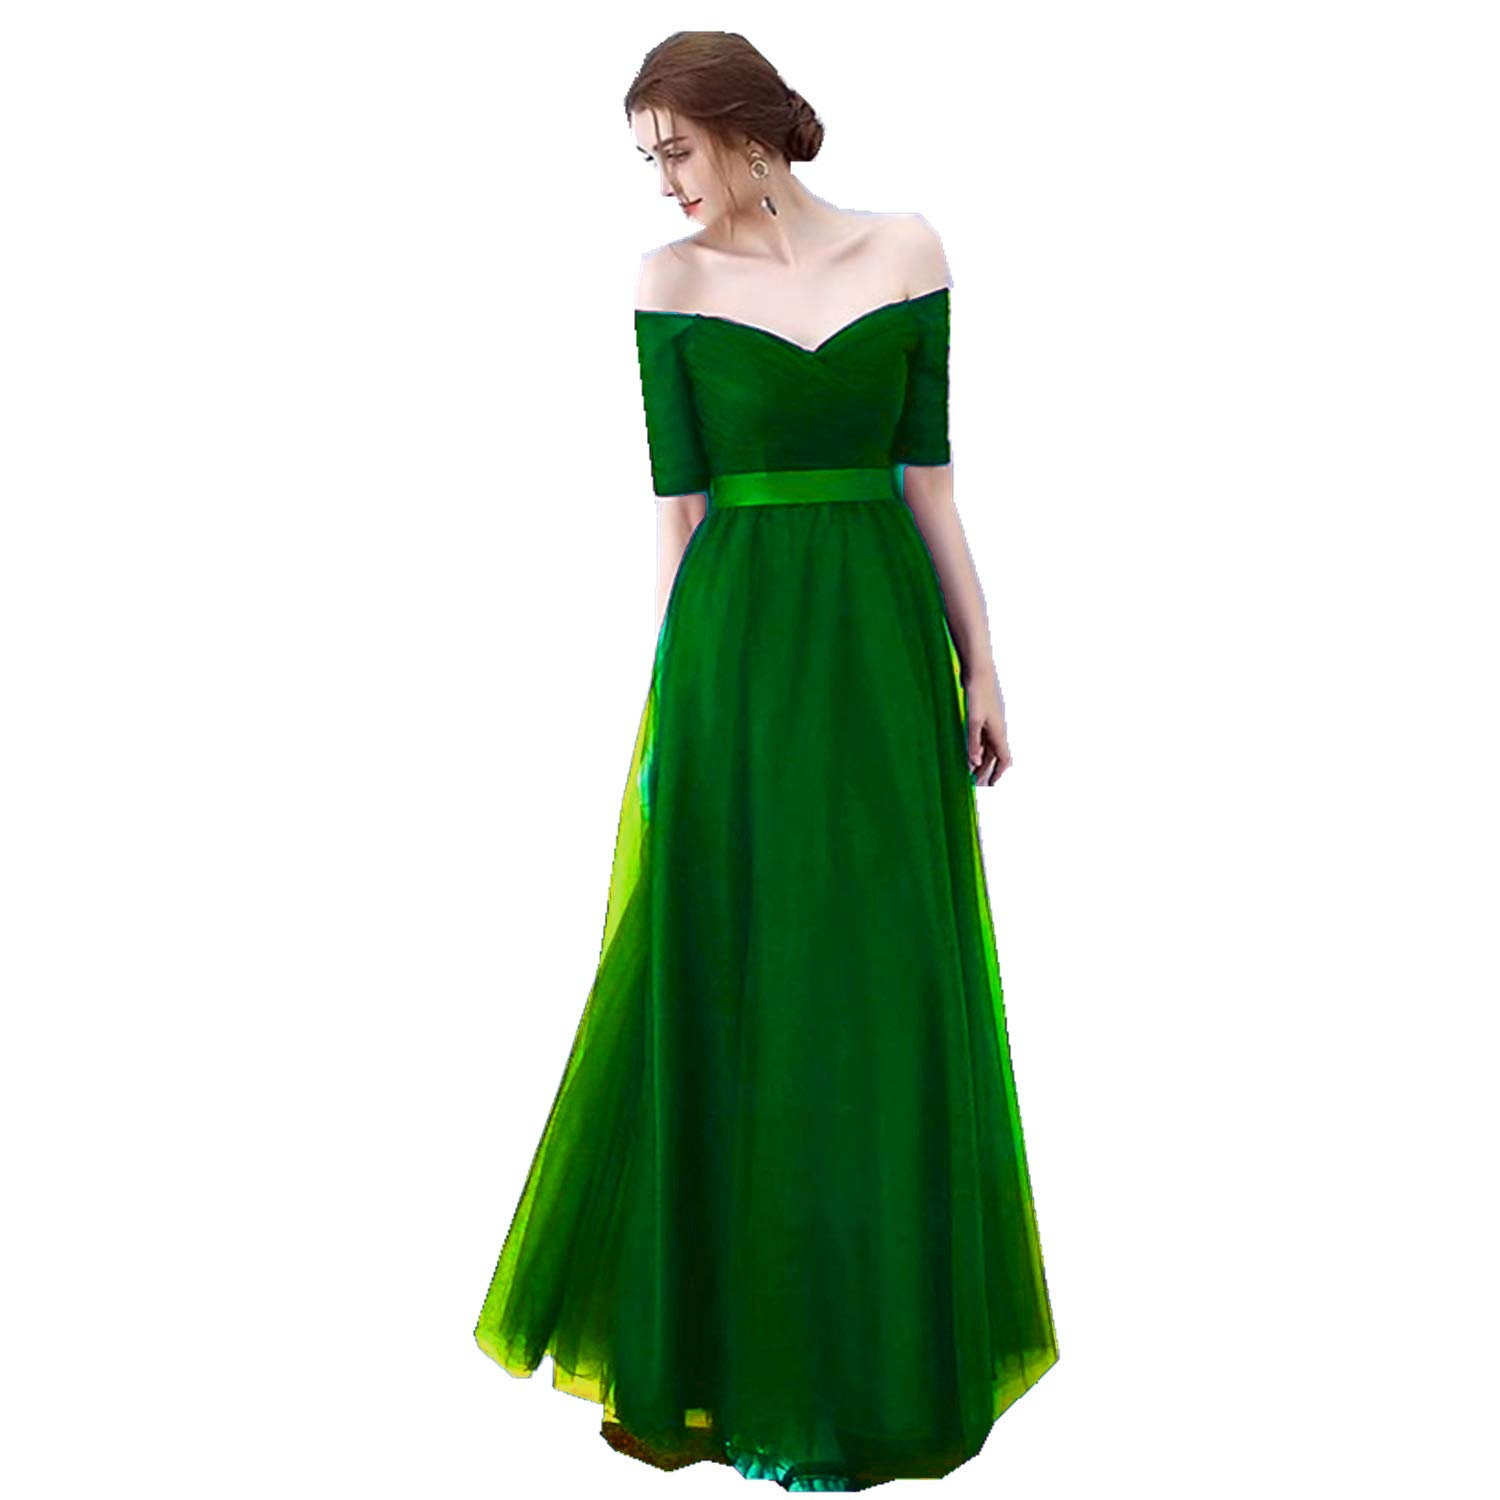 Green Ruiyuhong Women's VNeck Off The Shoulder Bridesmaid Dresses Long Tulle Wedding Party Gown